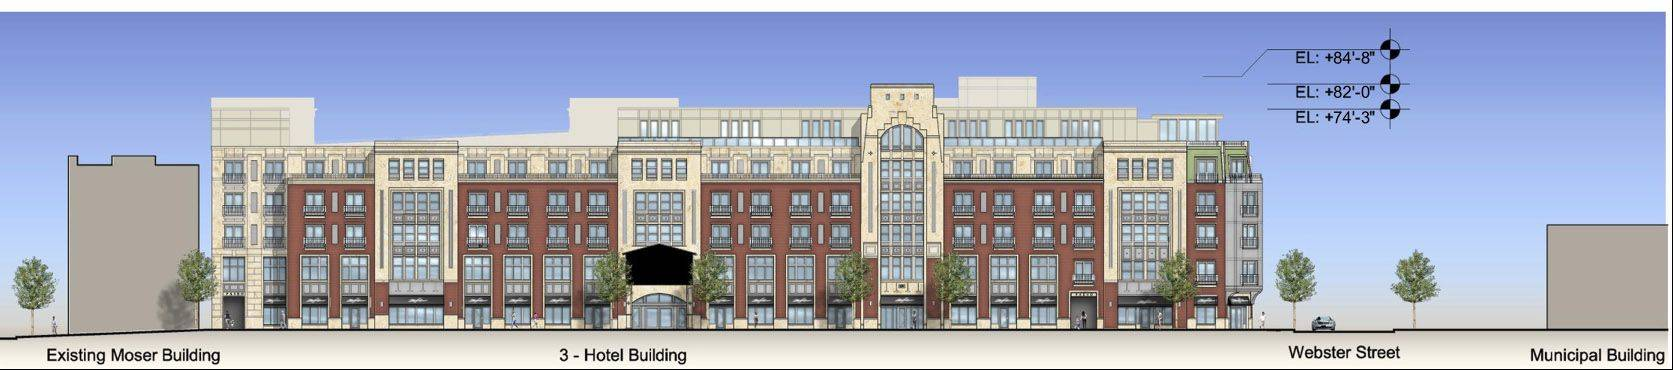 Naperville developer mum on latest Water Street plans